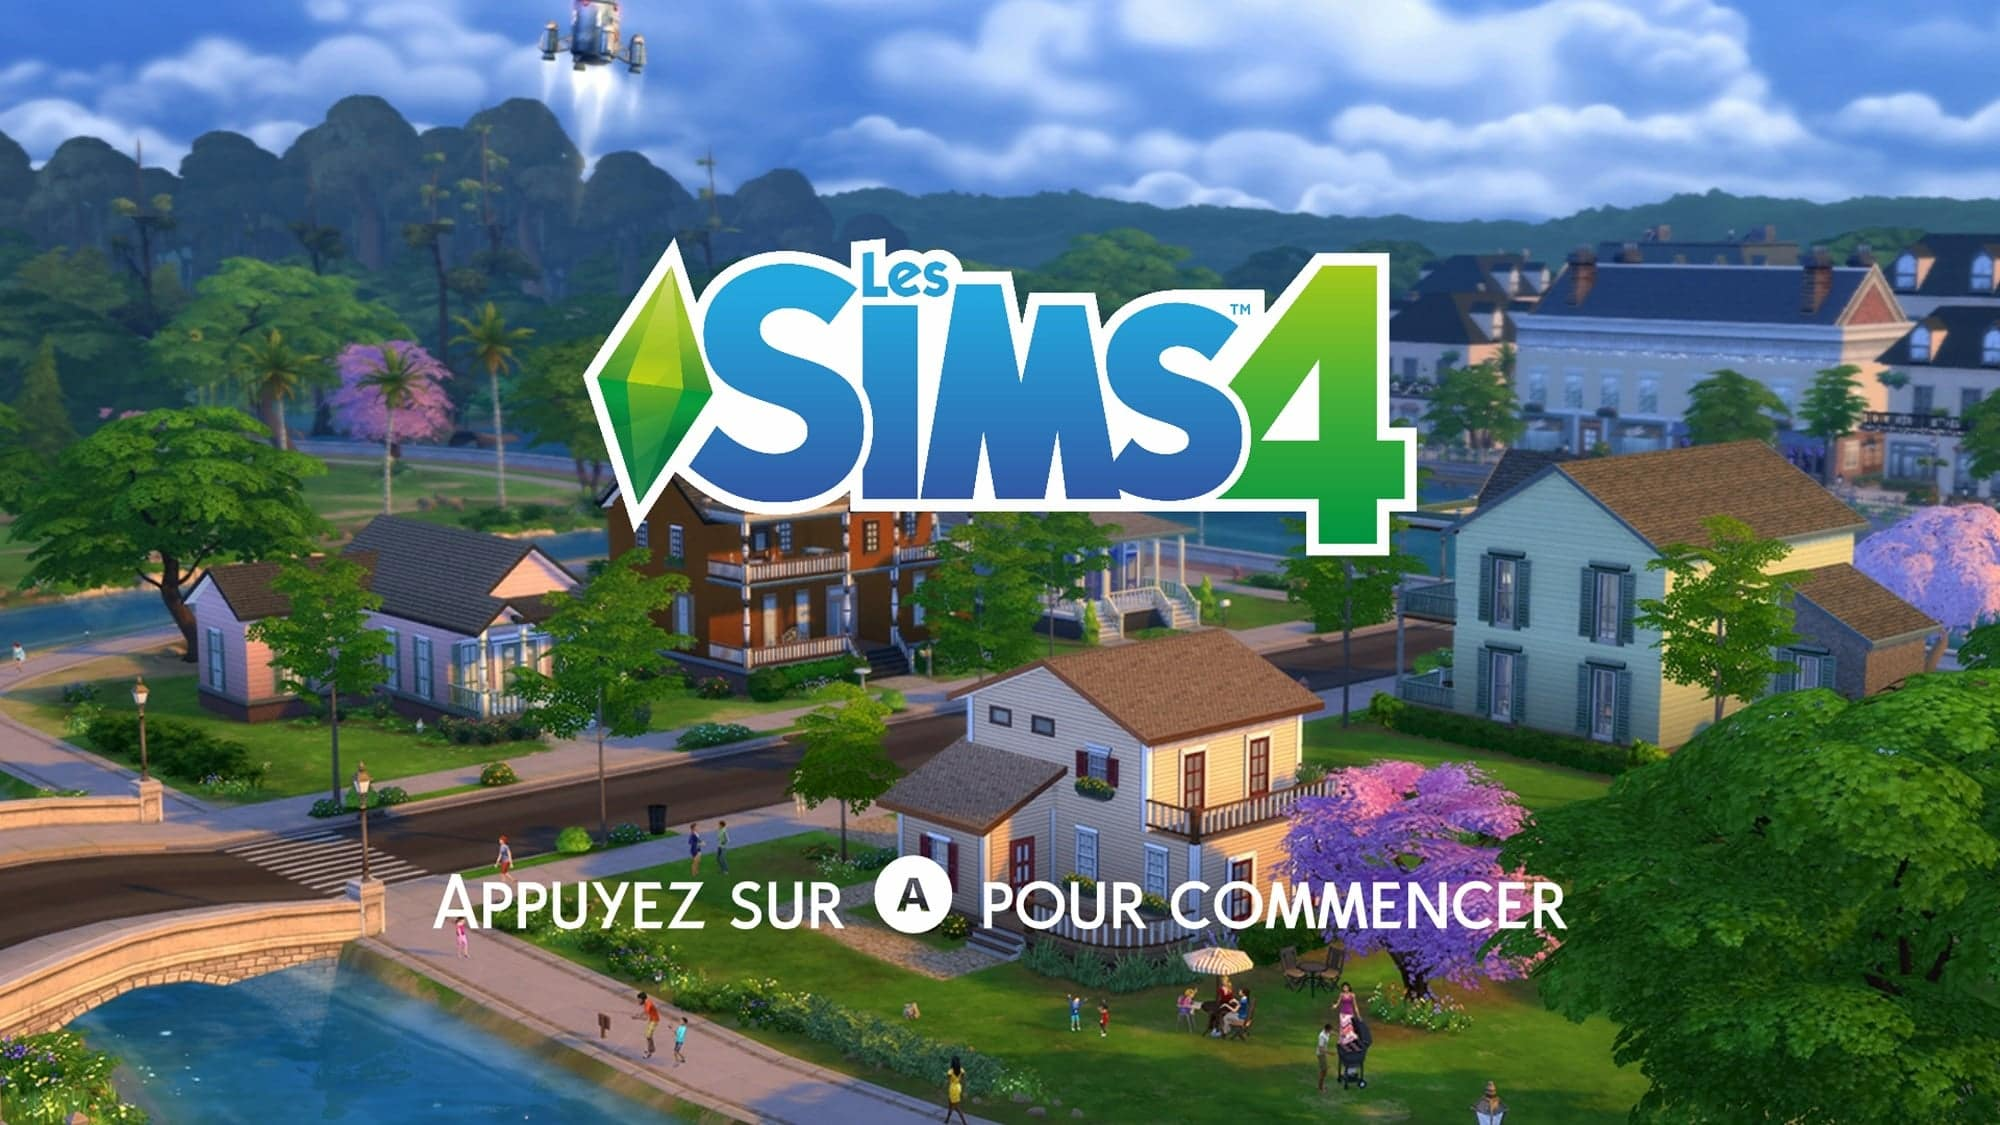 Démarrage sims 4 consoles xbox one ps4